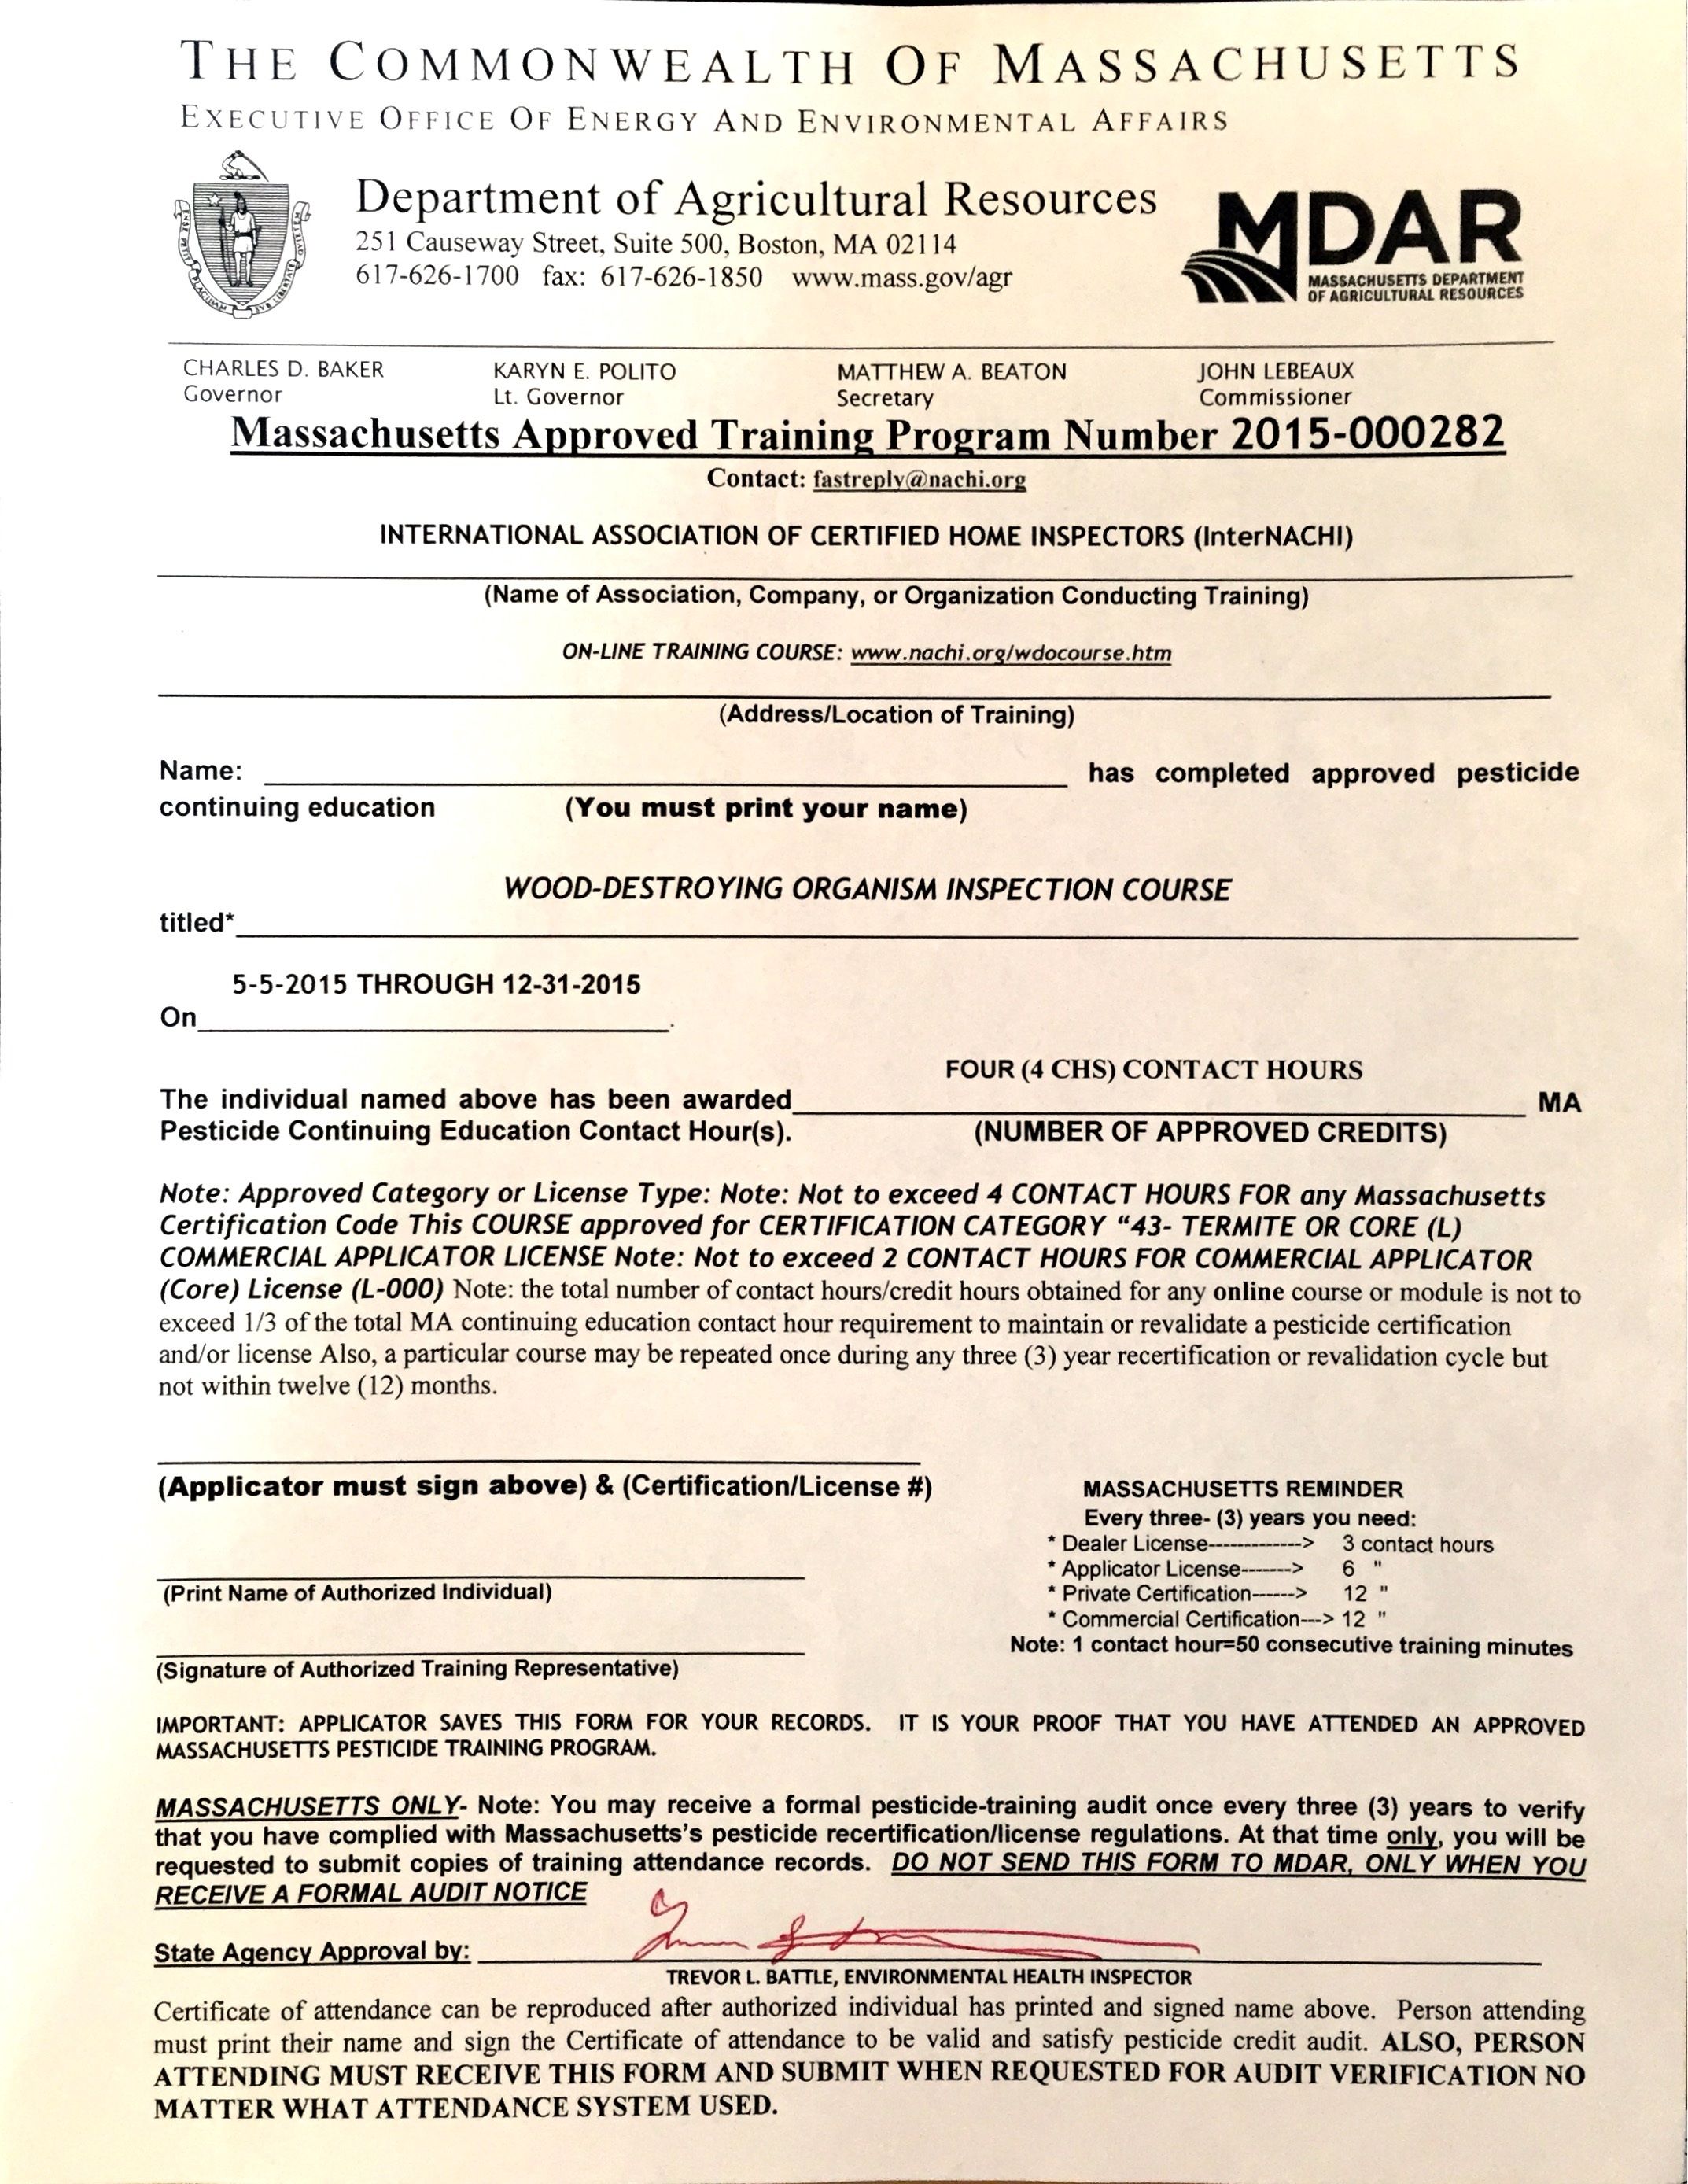 Massachusetts approves internachis free online wdo inspection view approval letter from massachusetts of the free online wood destroying organism wdo inspection course 2015 xflitez Image collections